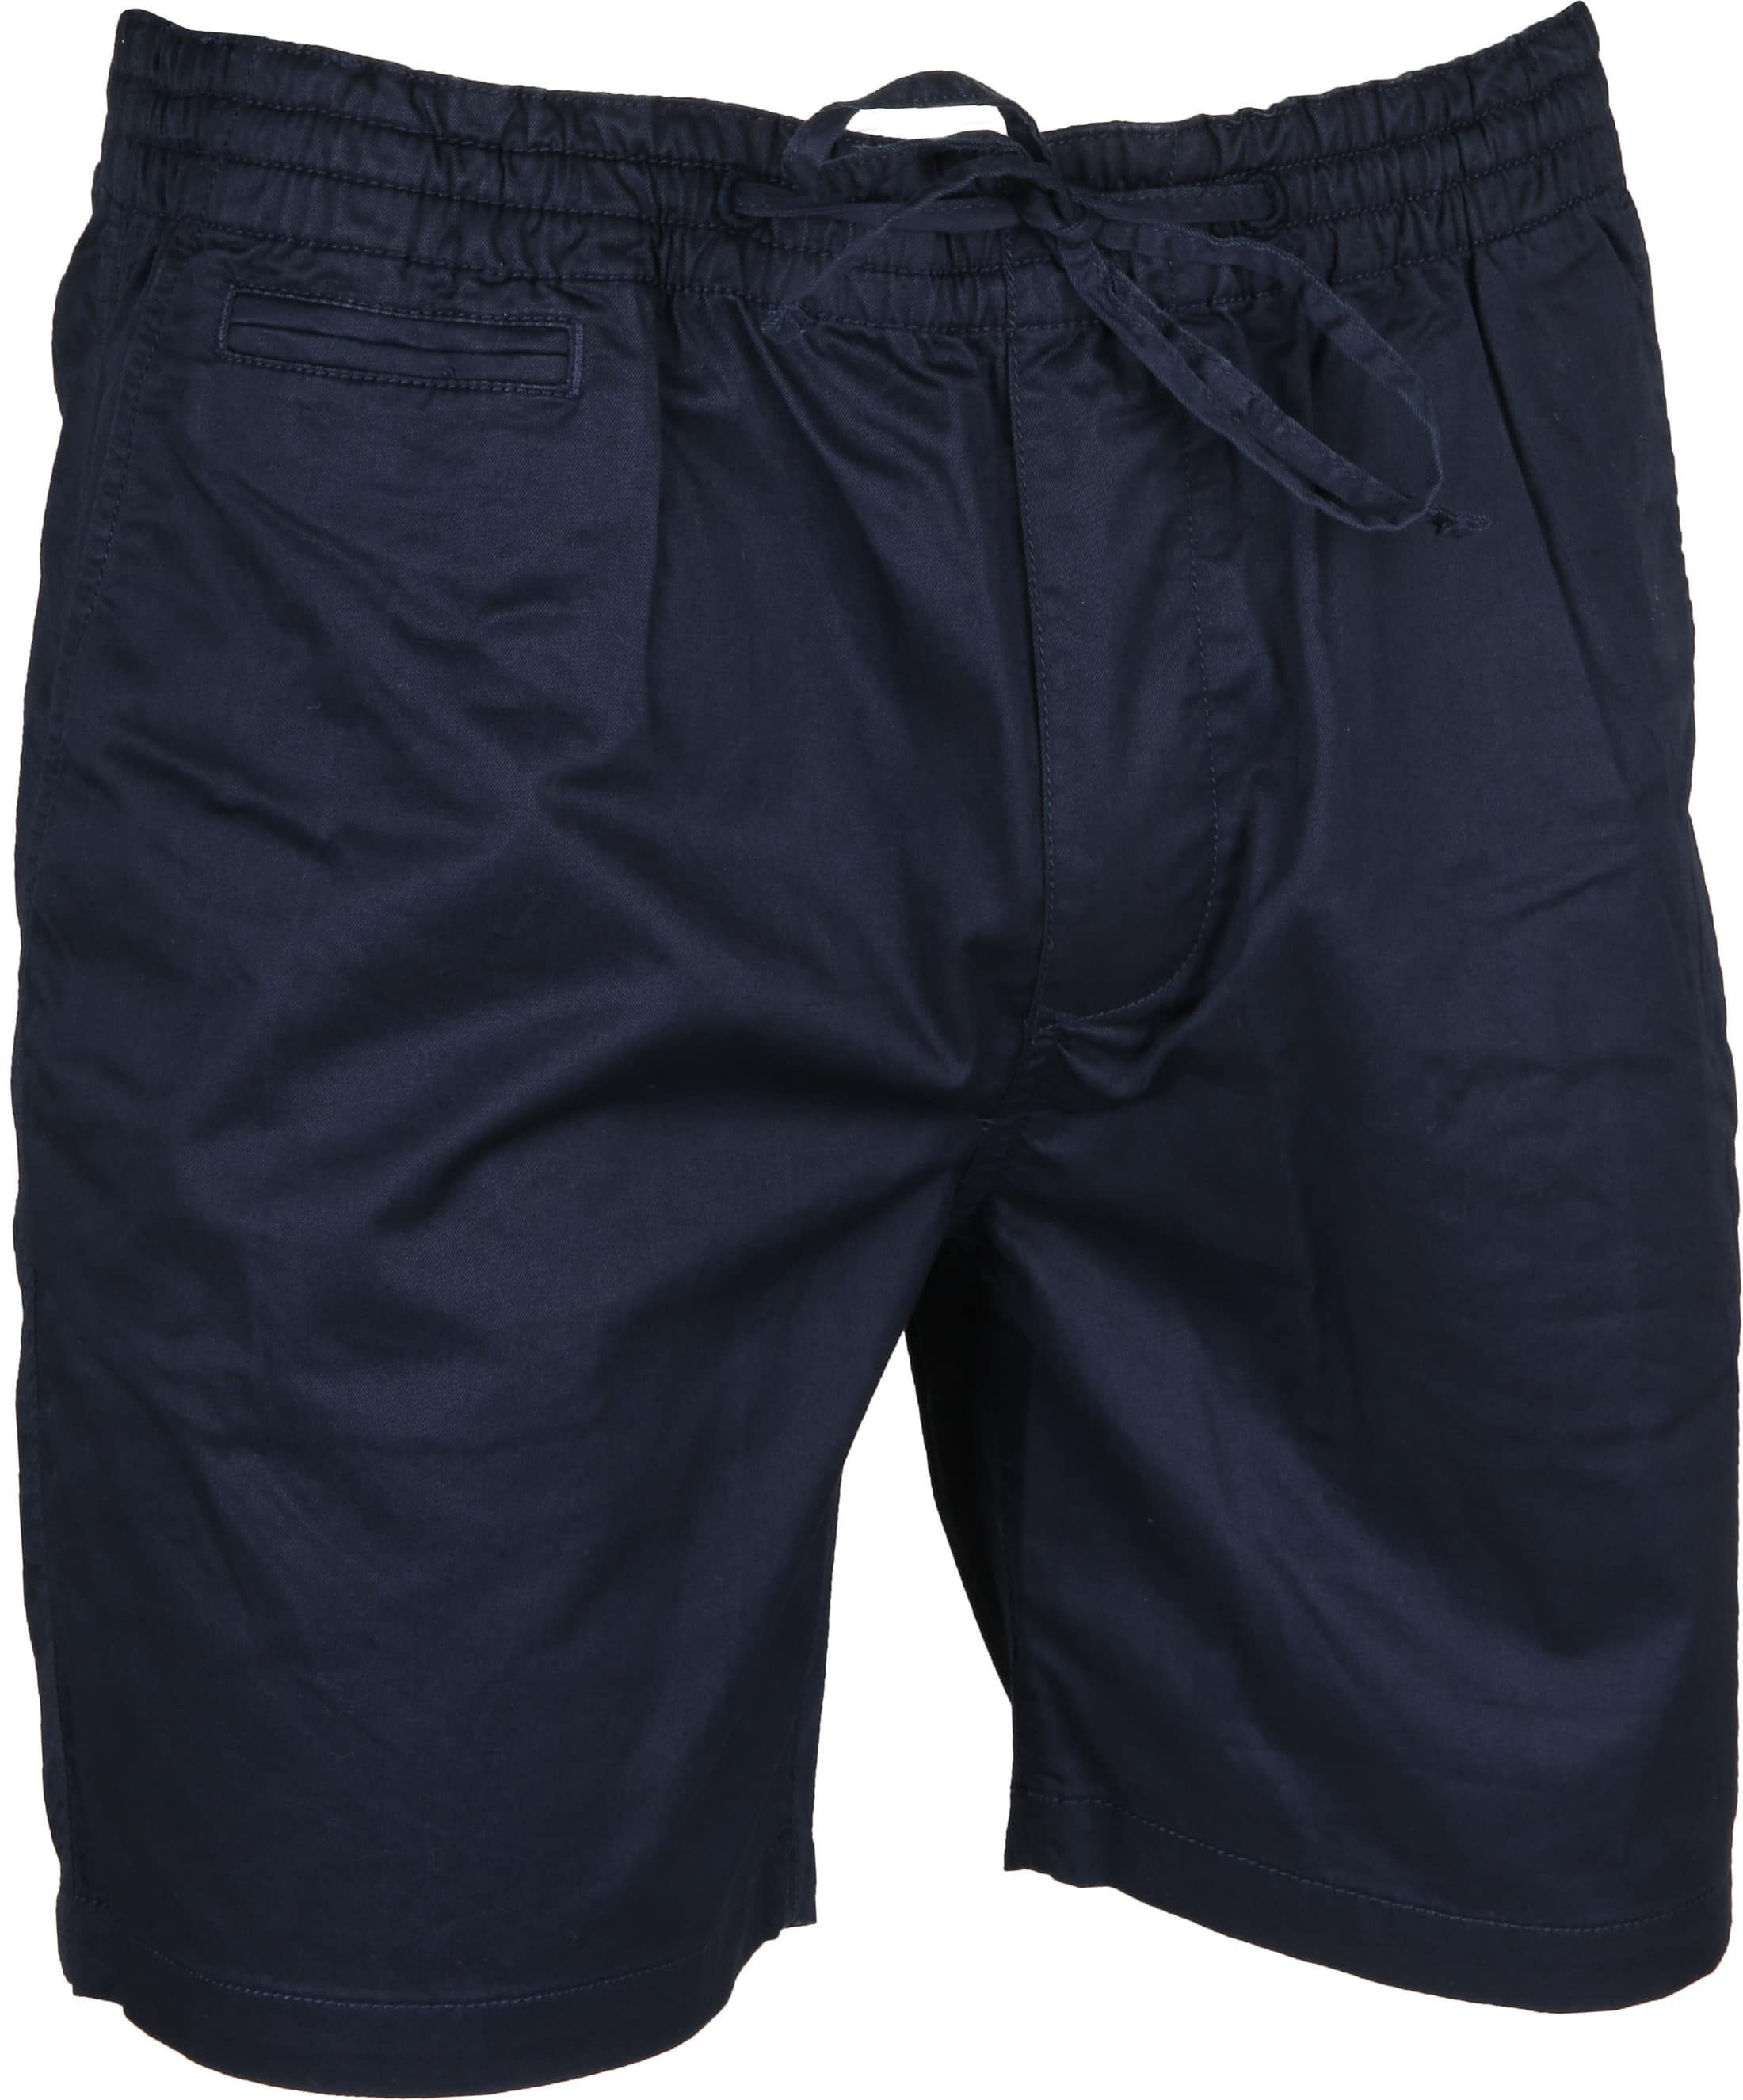 Gant Relaxed Short Navy 205008 410 order online | Suitable